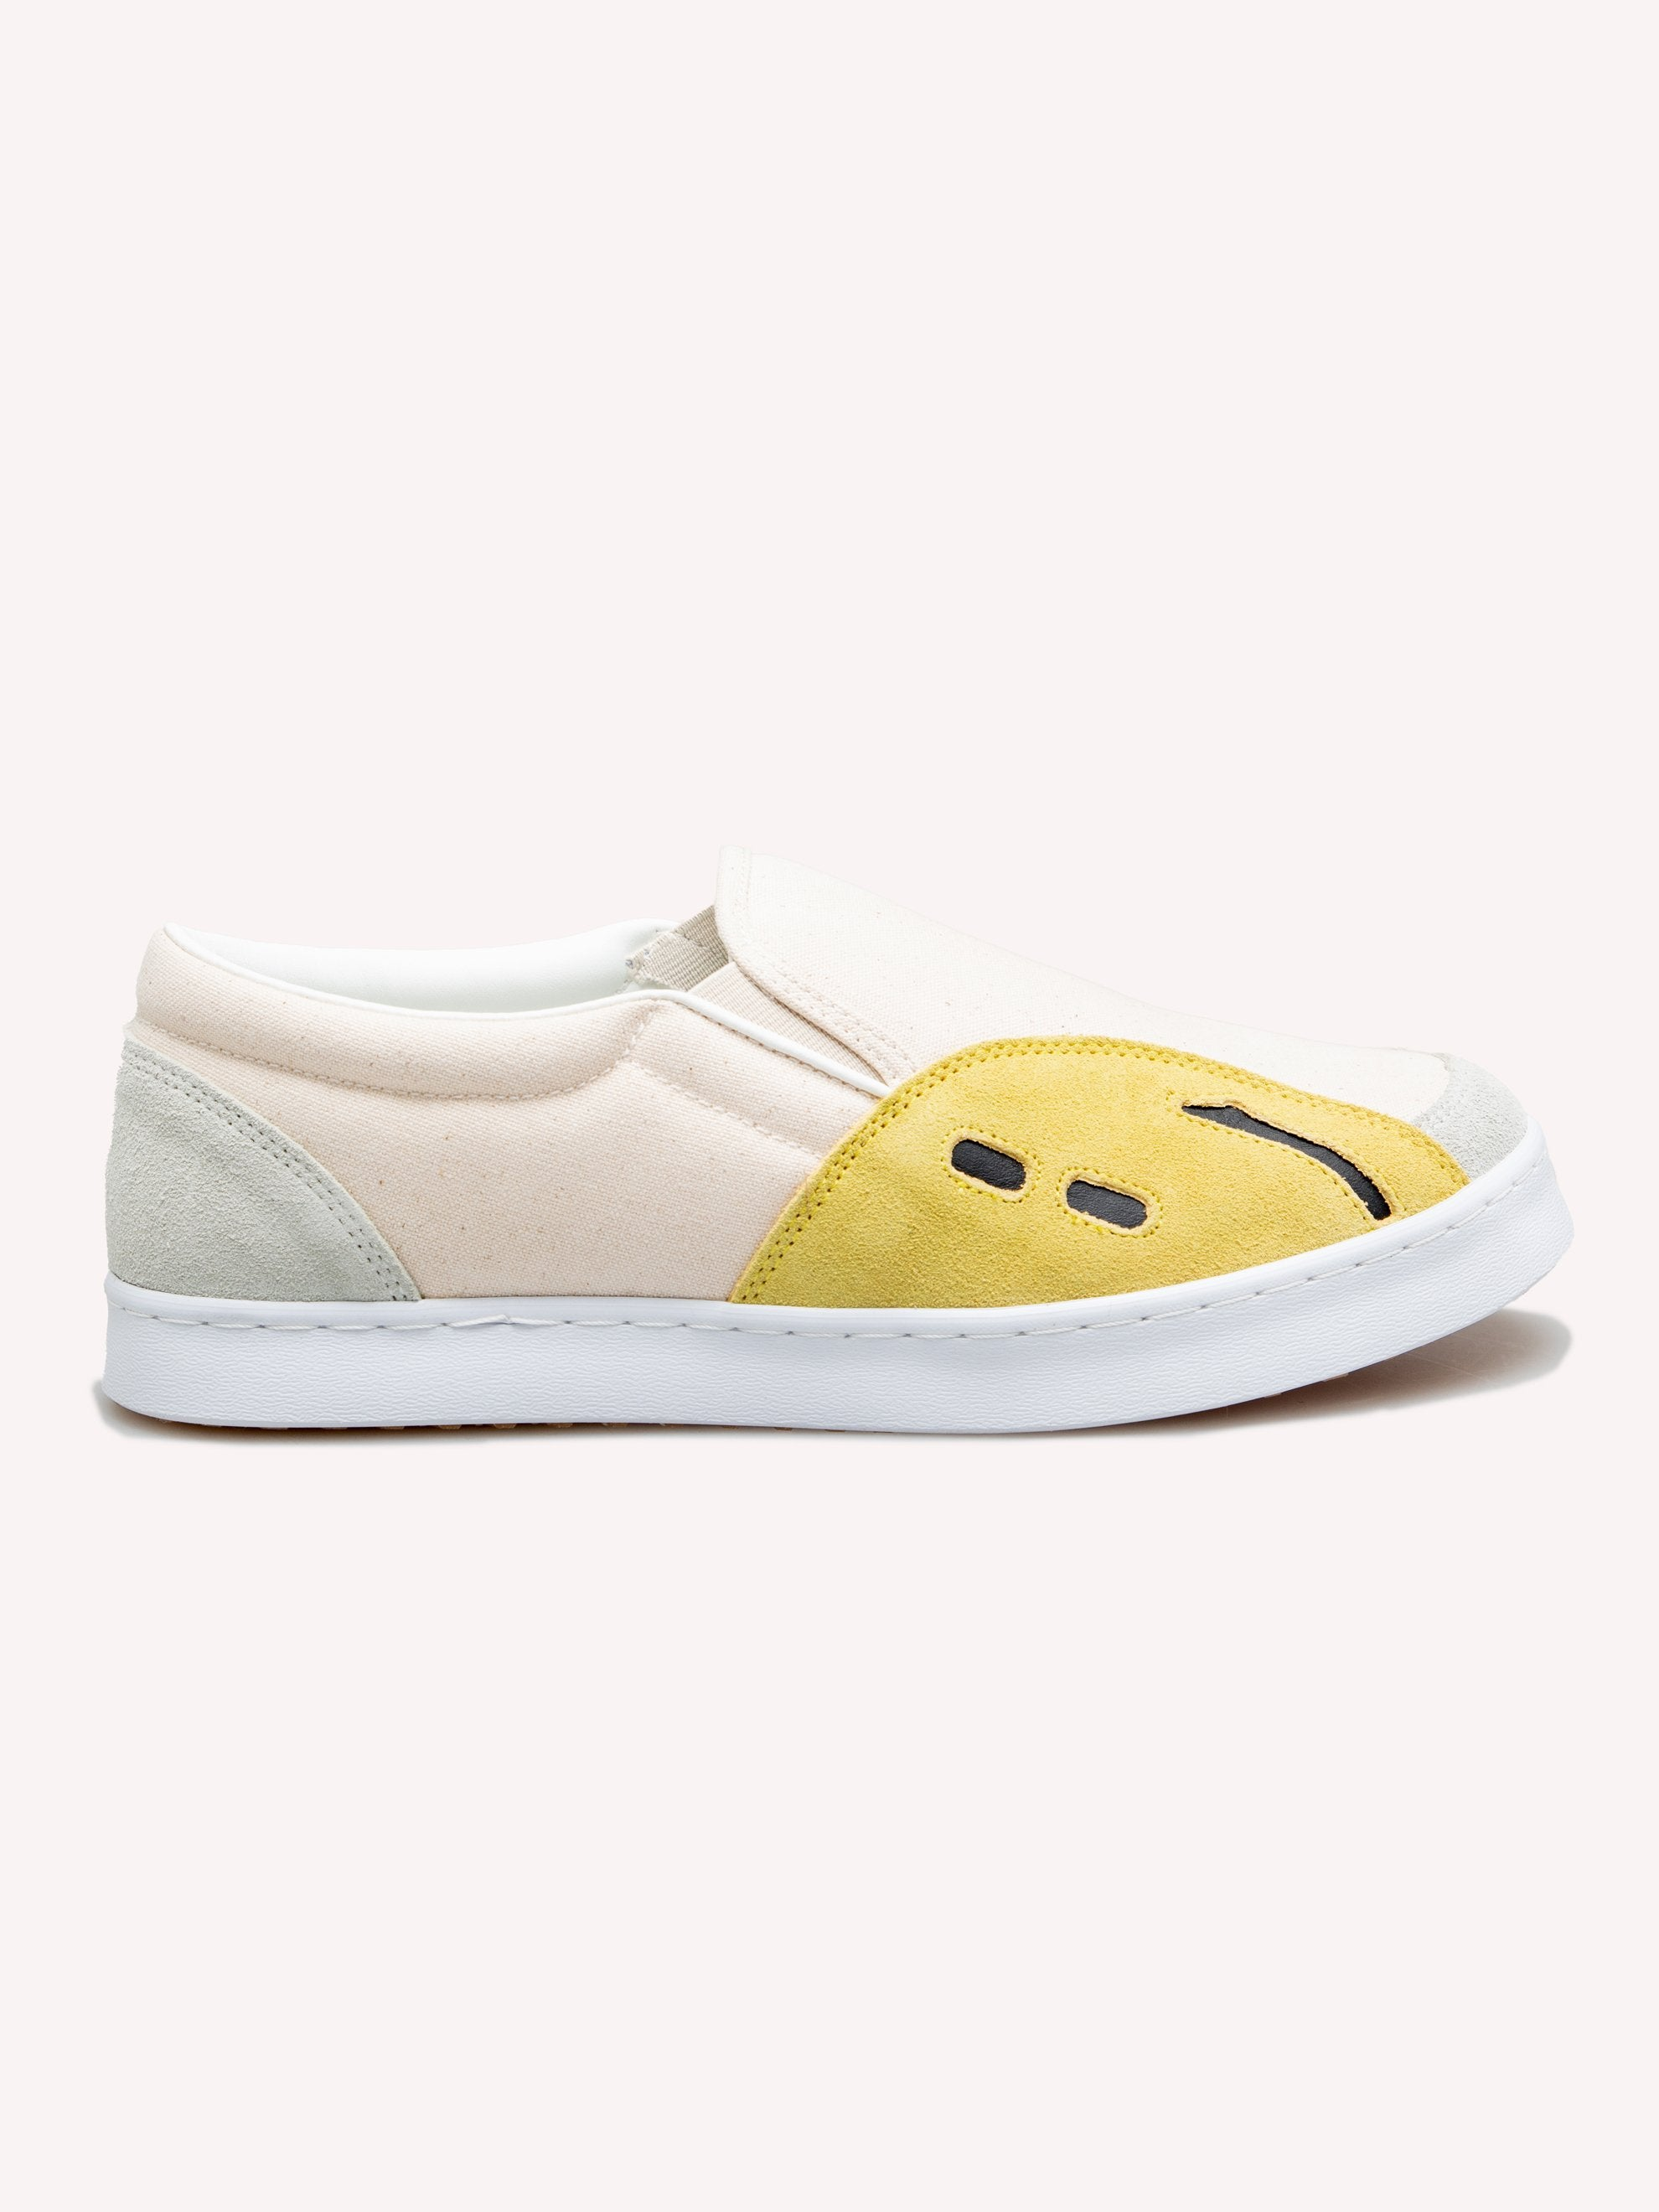 Rain Smile Slip-On Shoes